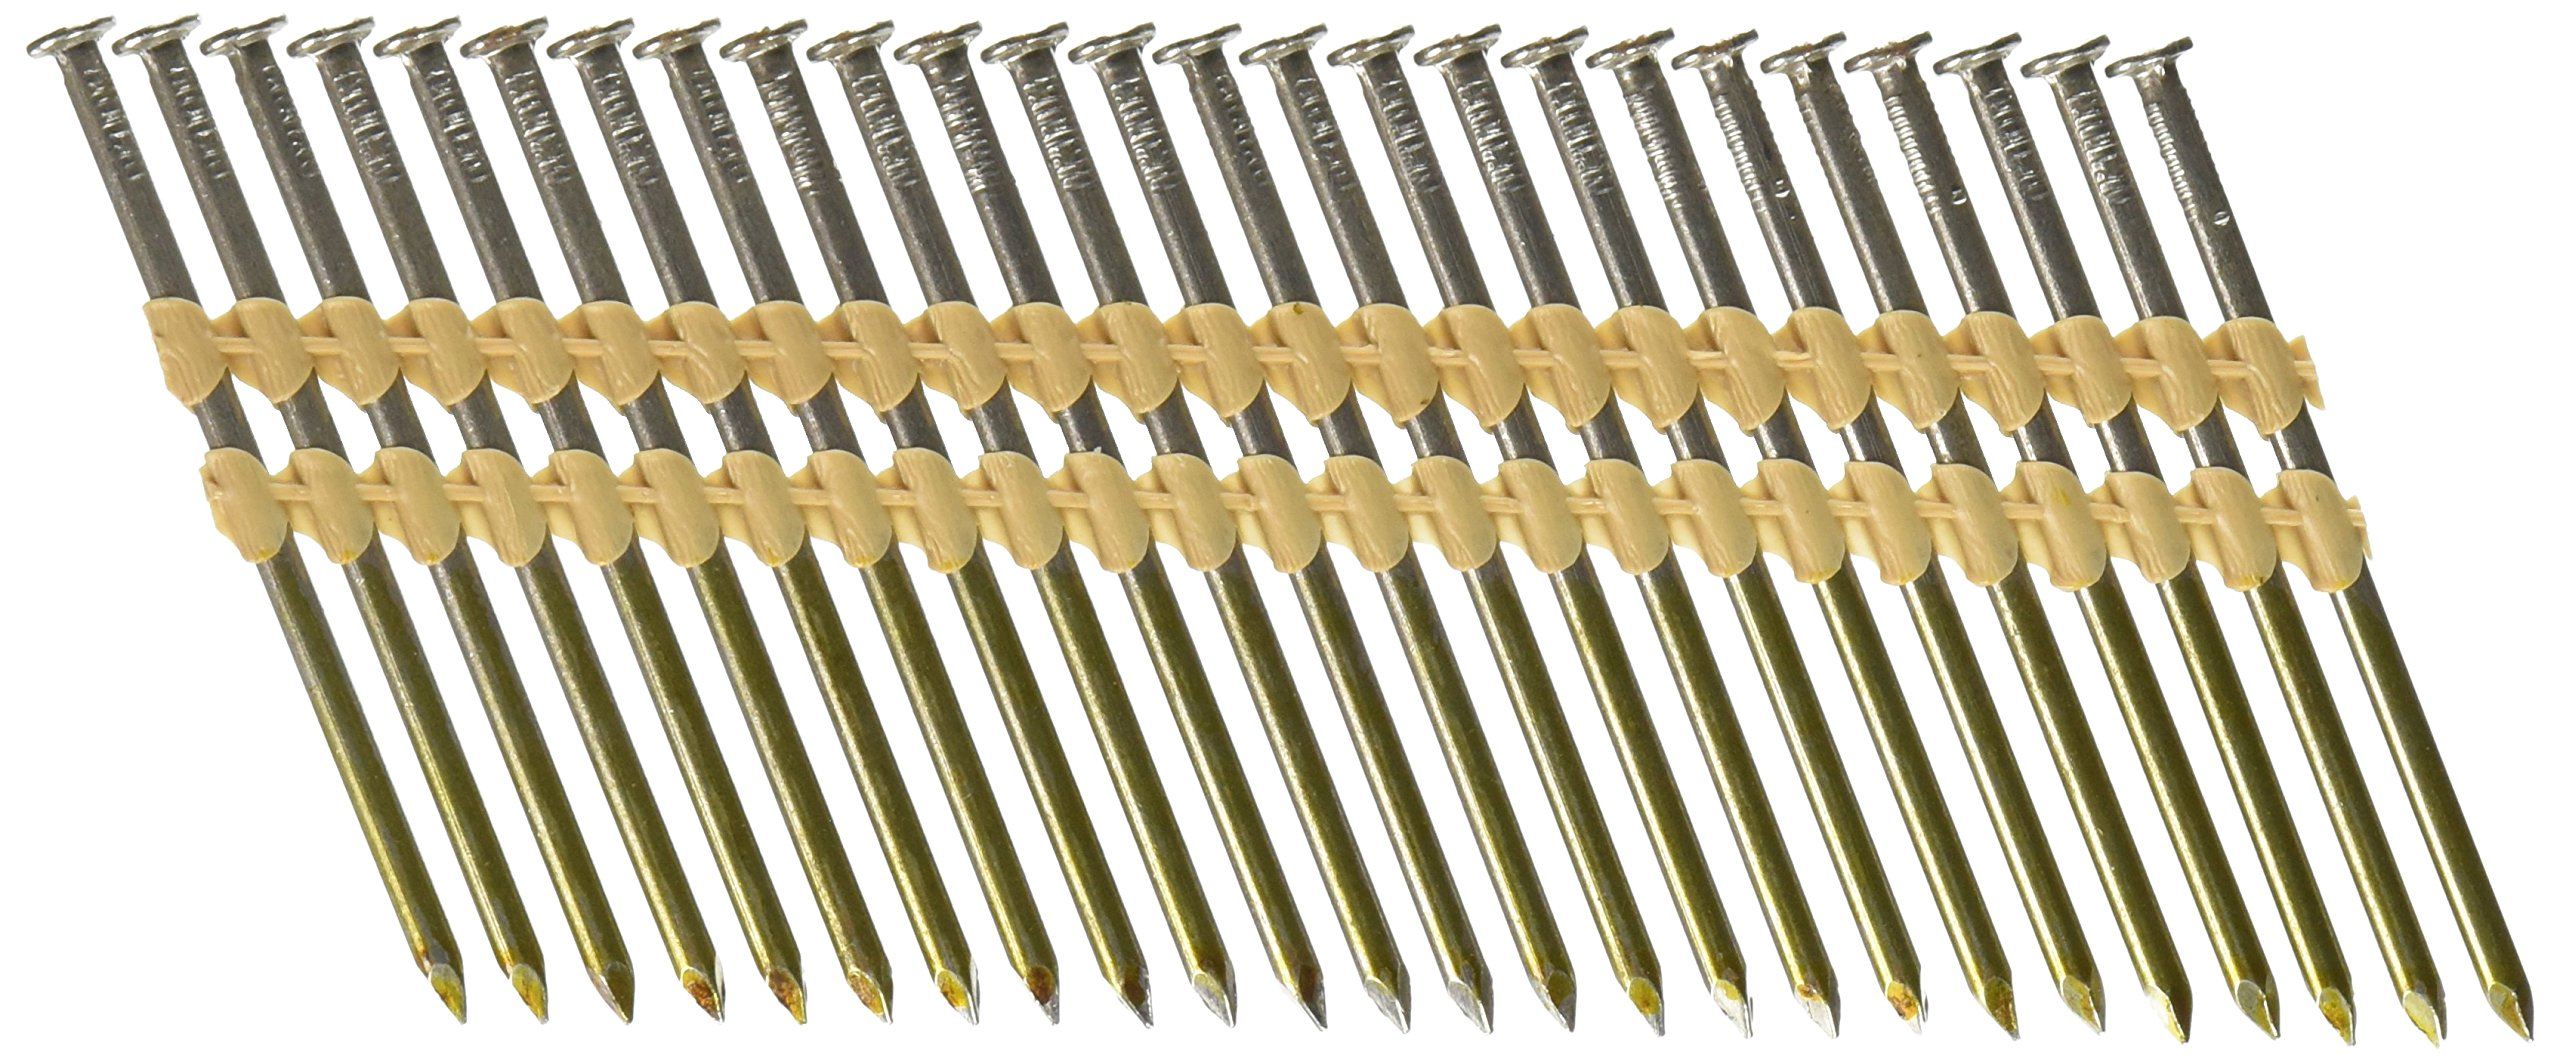 Hitachi 20138S Hitachi 20138S 3-1/4-in x .148 Bright Smooth Shank Plastic Collated Nails,